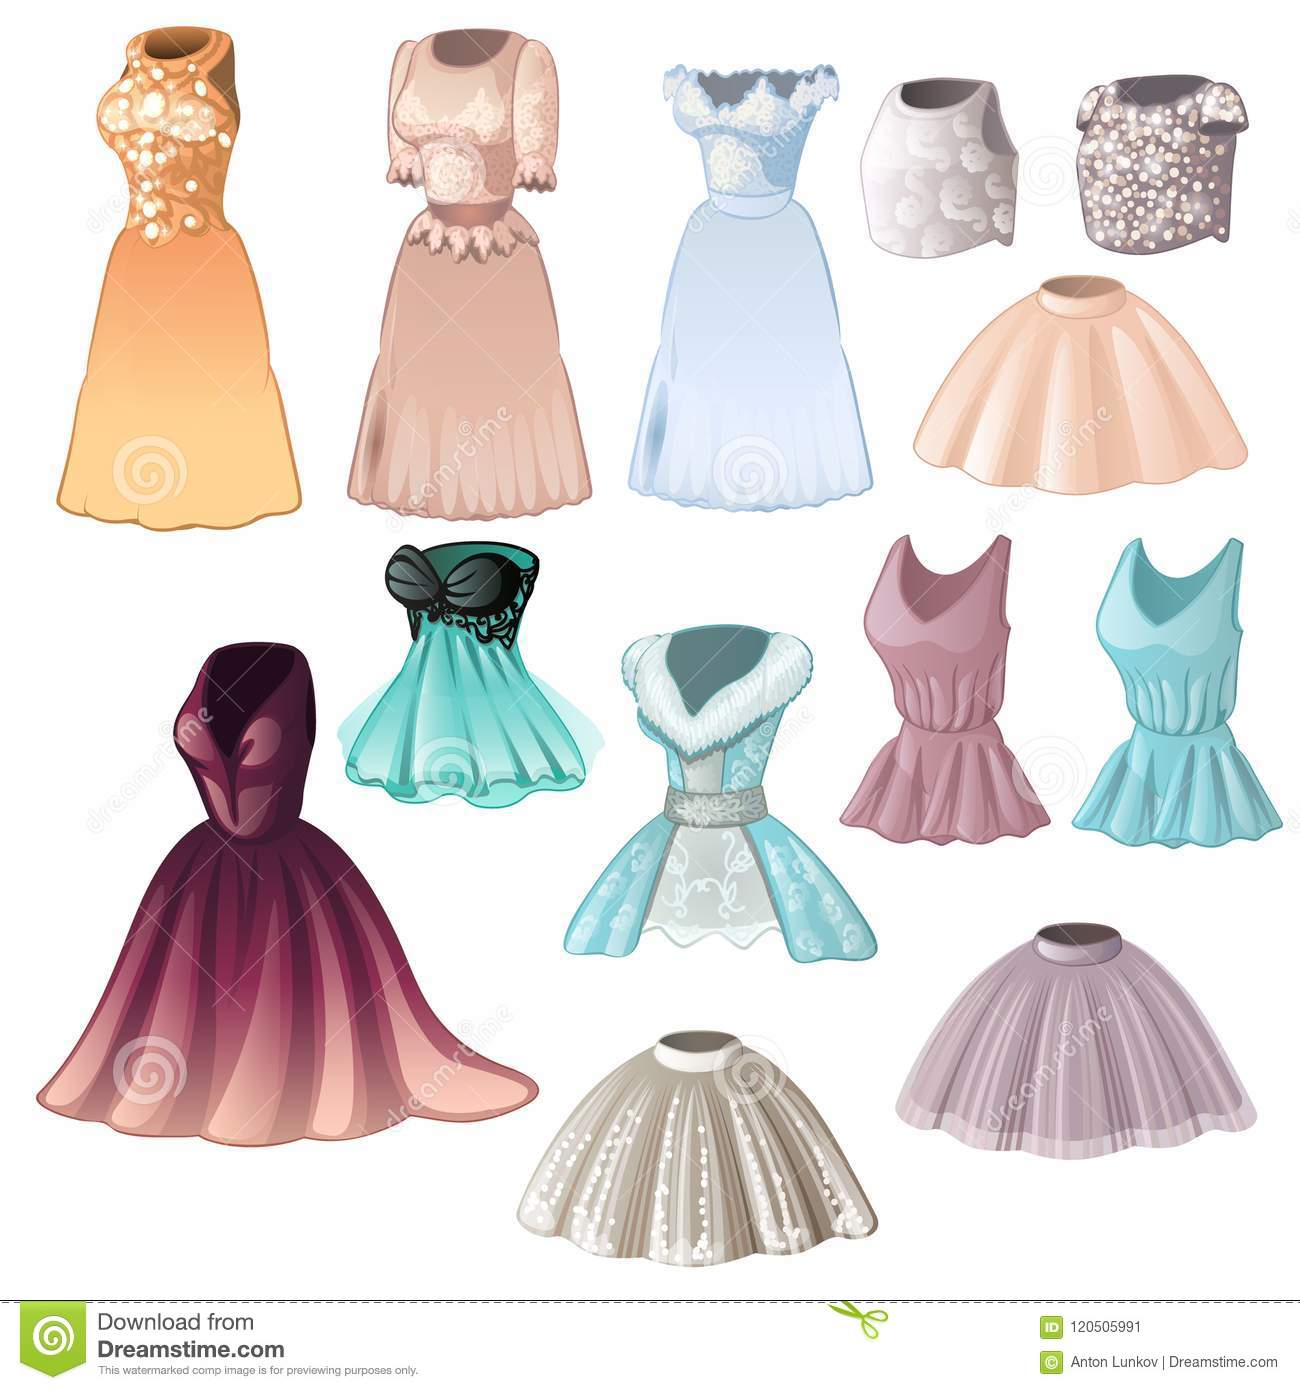 a6c9bc864f96b2 Set of elegant womens dresses and skirts isolated on white background.  Vector cartoon close-up illustration.